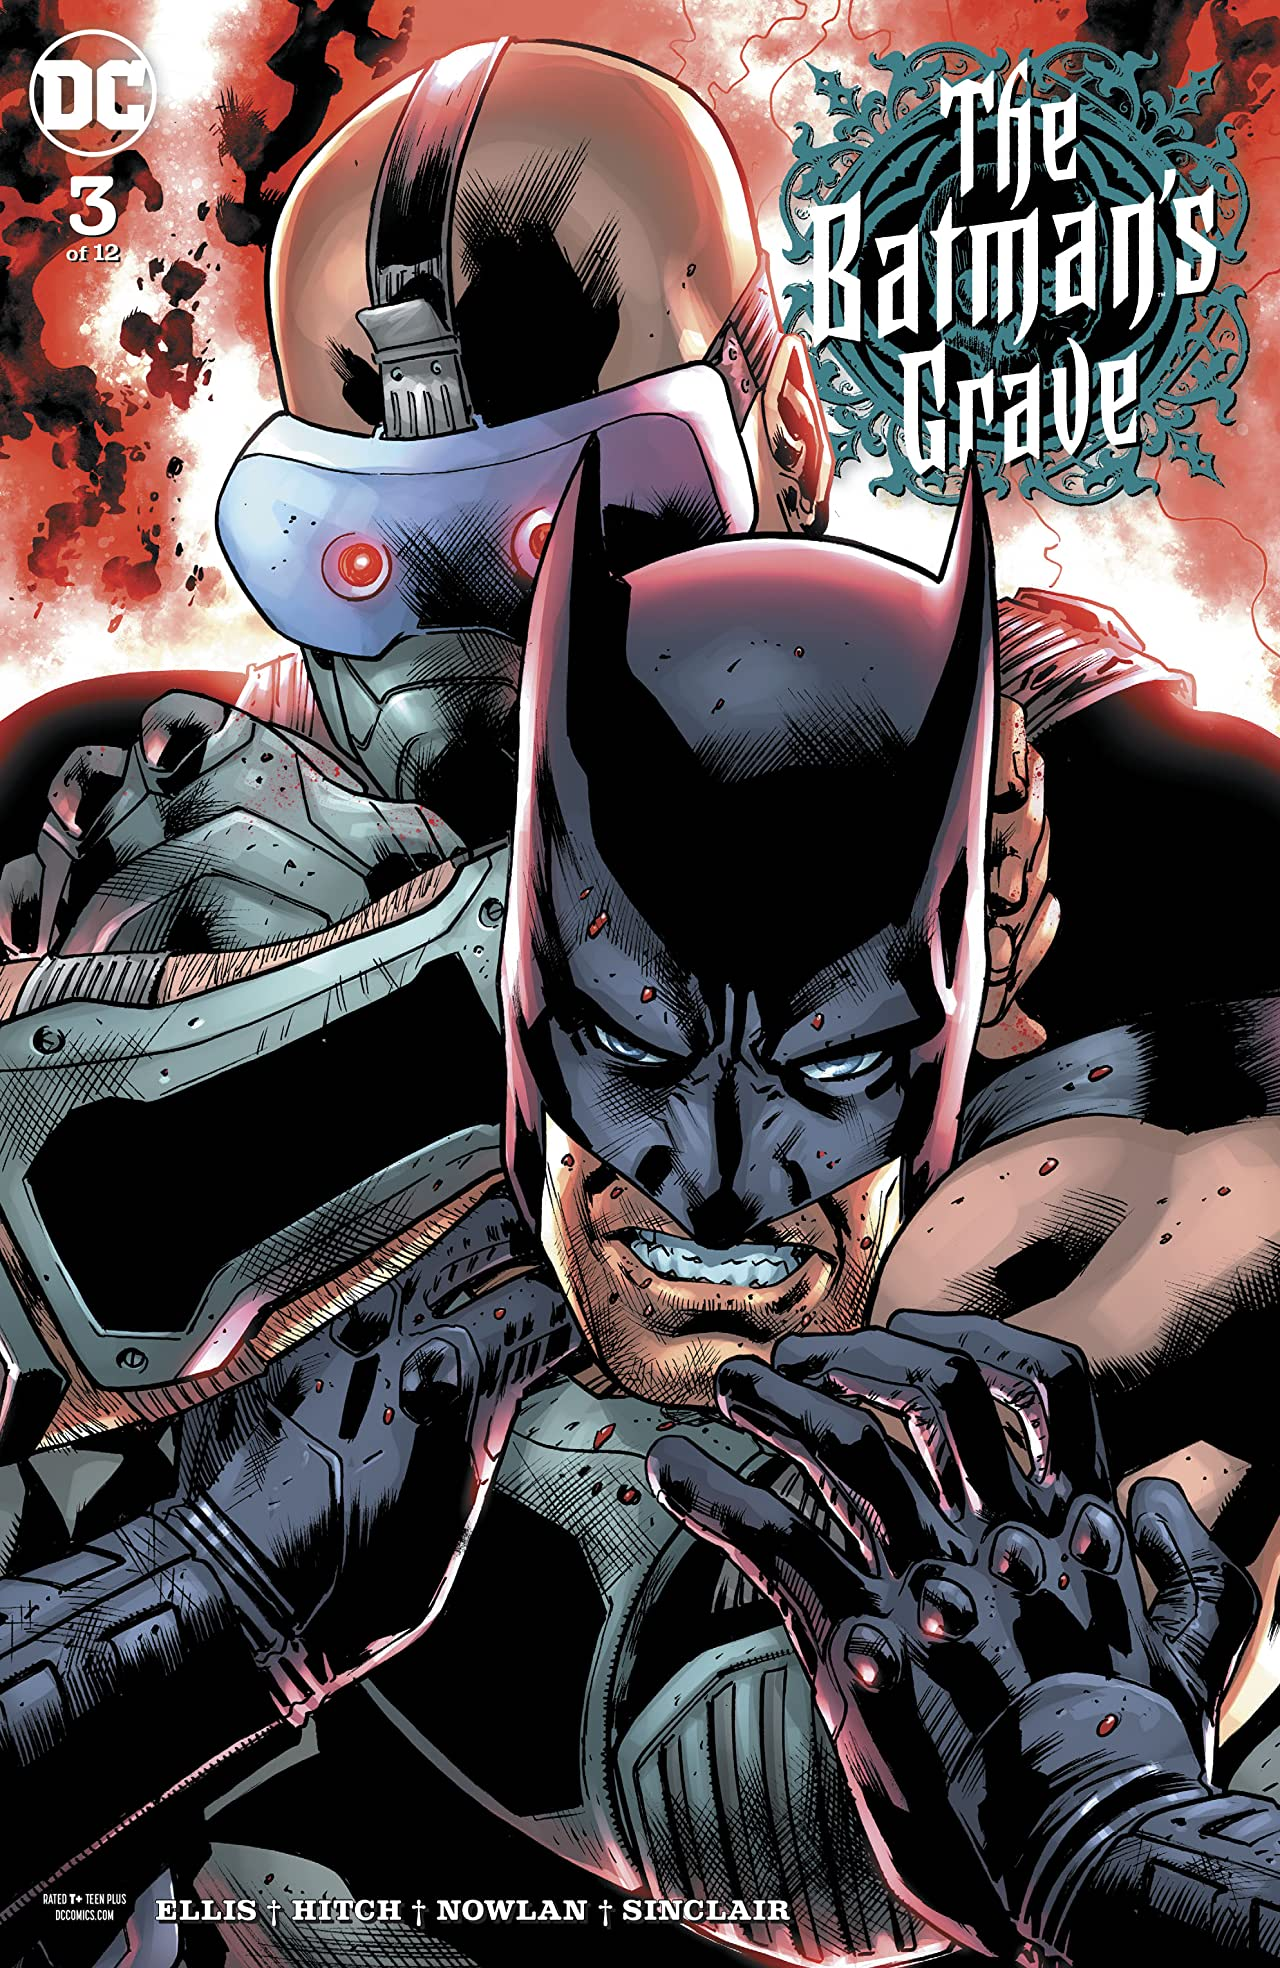 The Batman's Grave (2019-) No.3